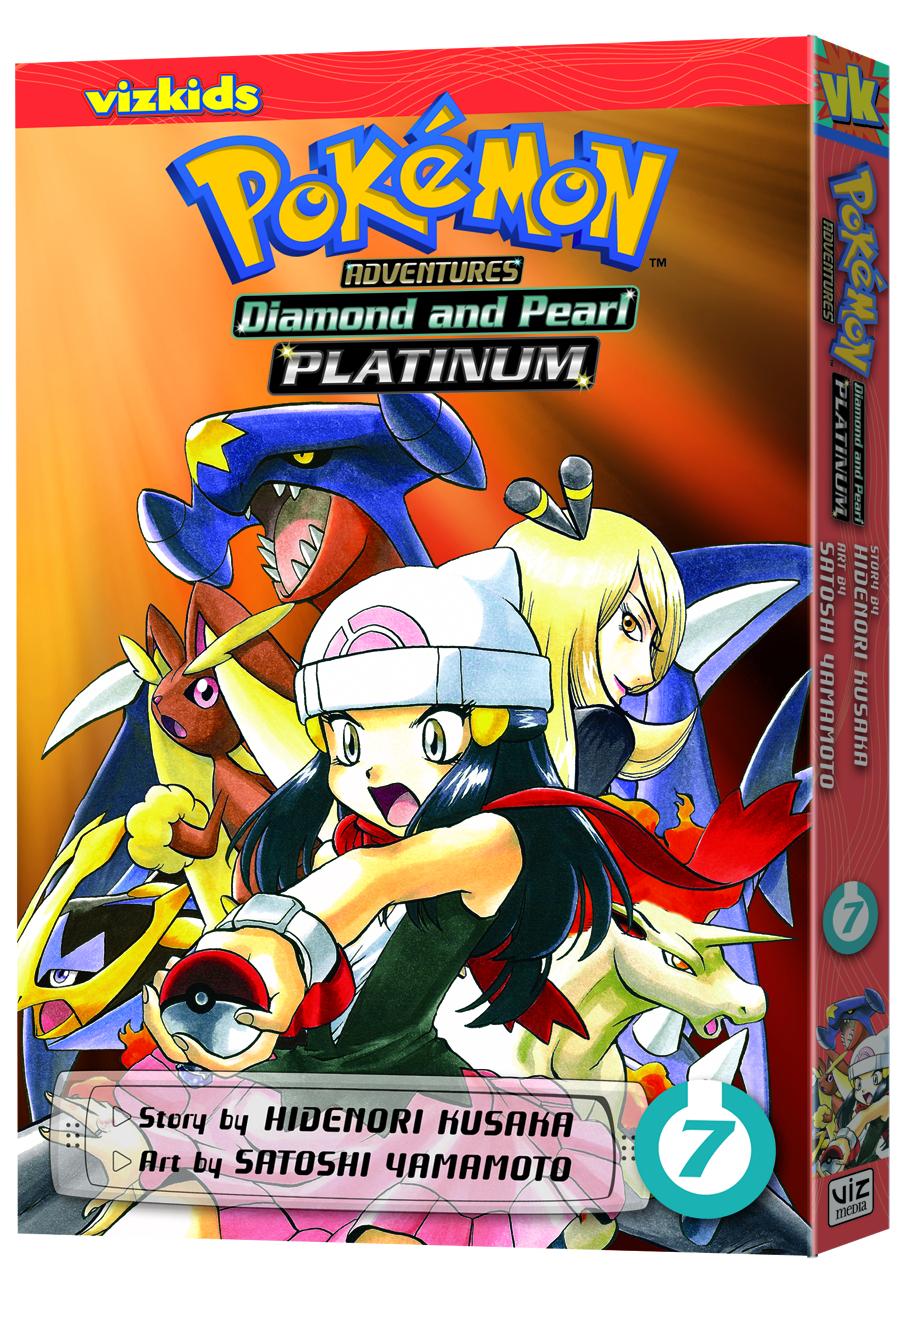 (USE SEP138028) POKEMON ADV PLATINUM GN VOL 07